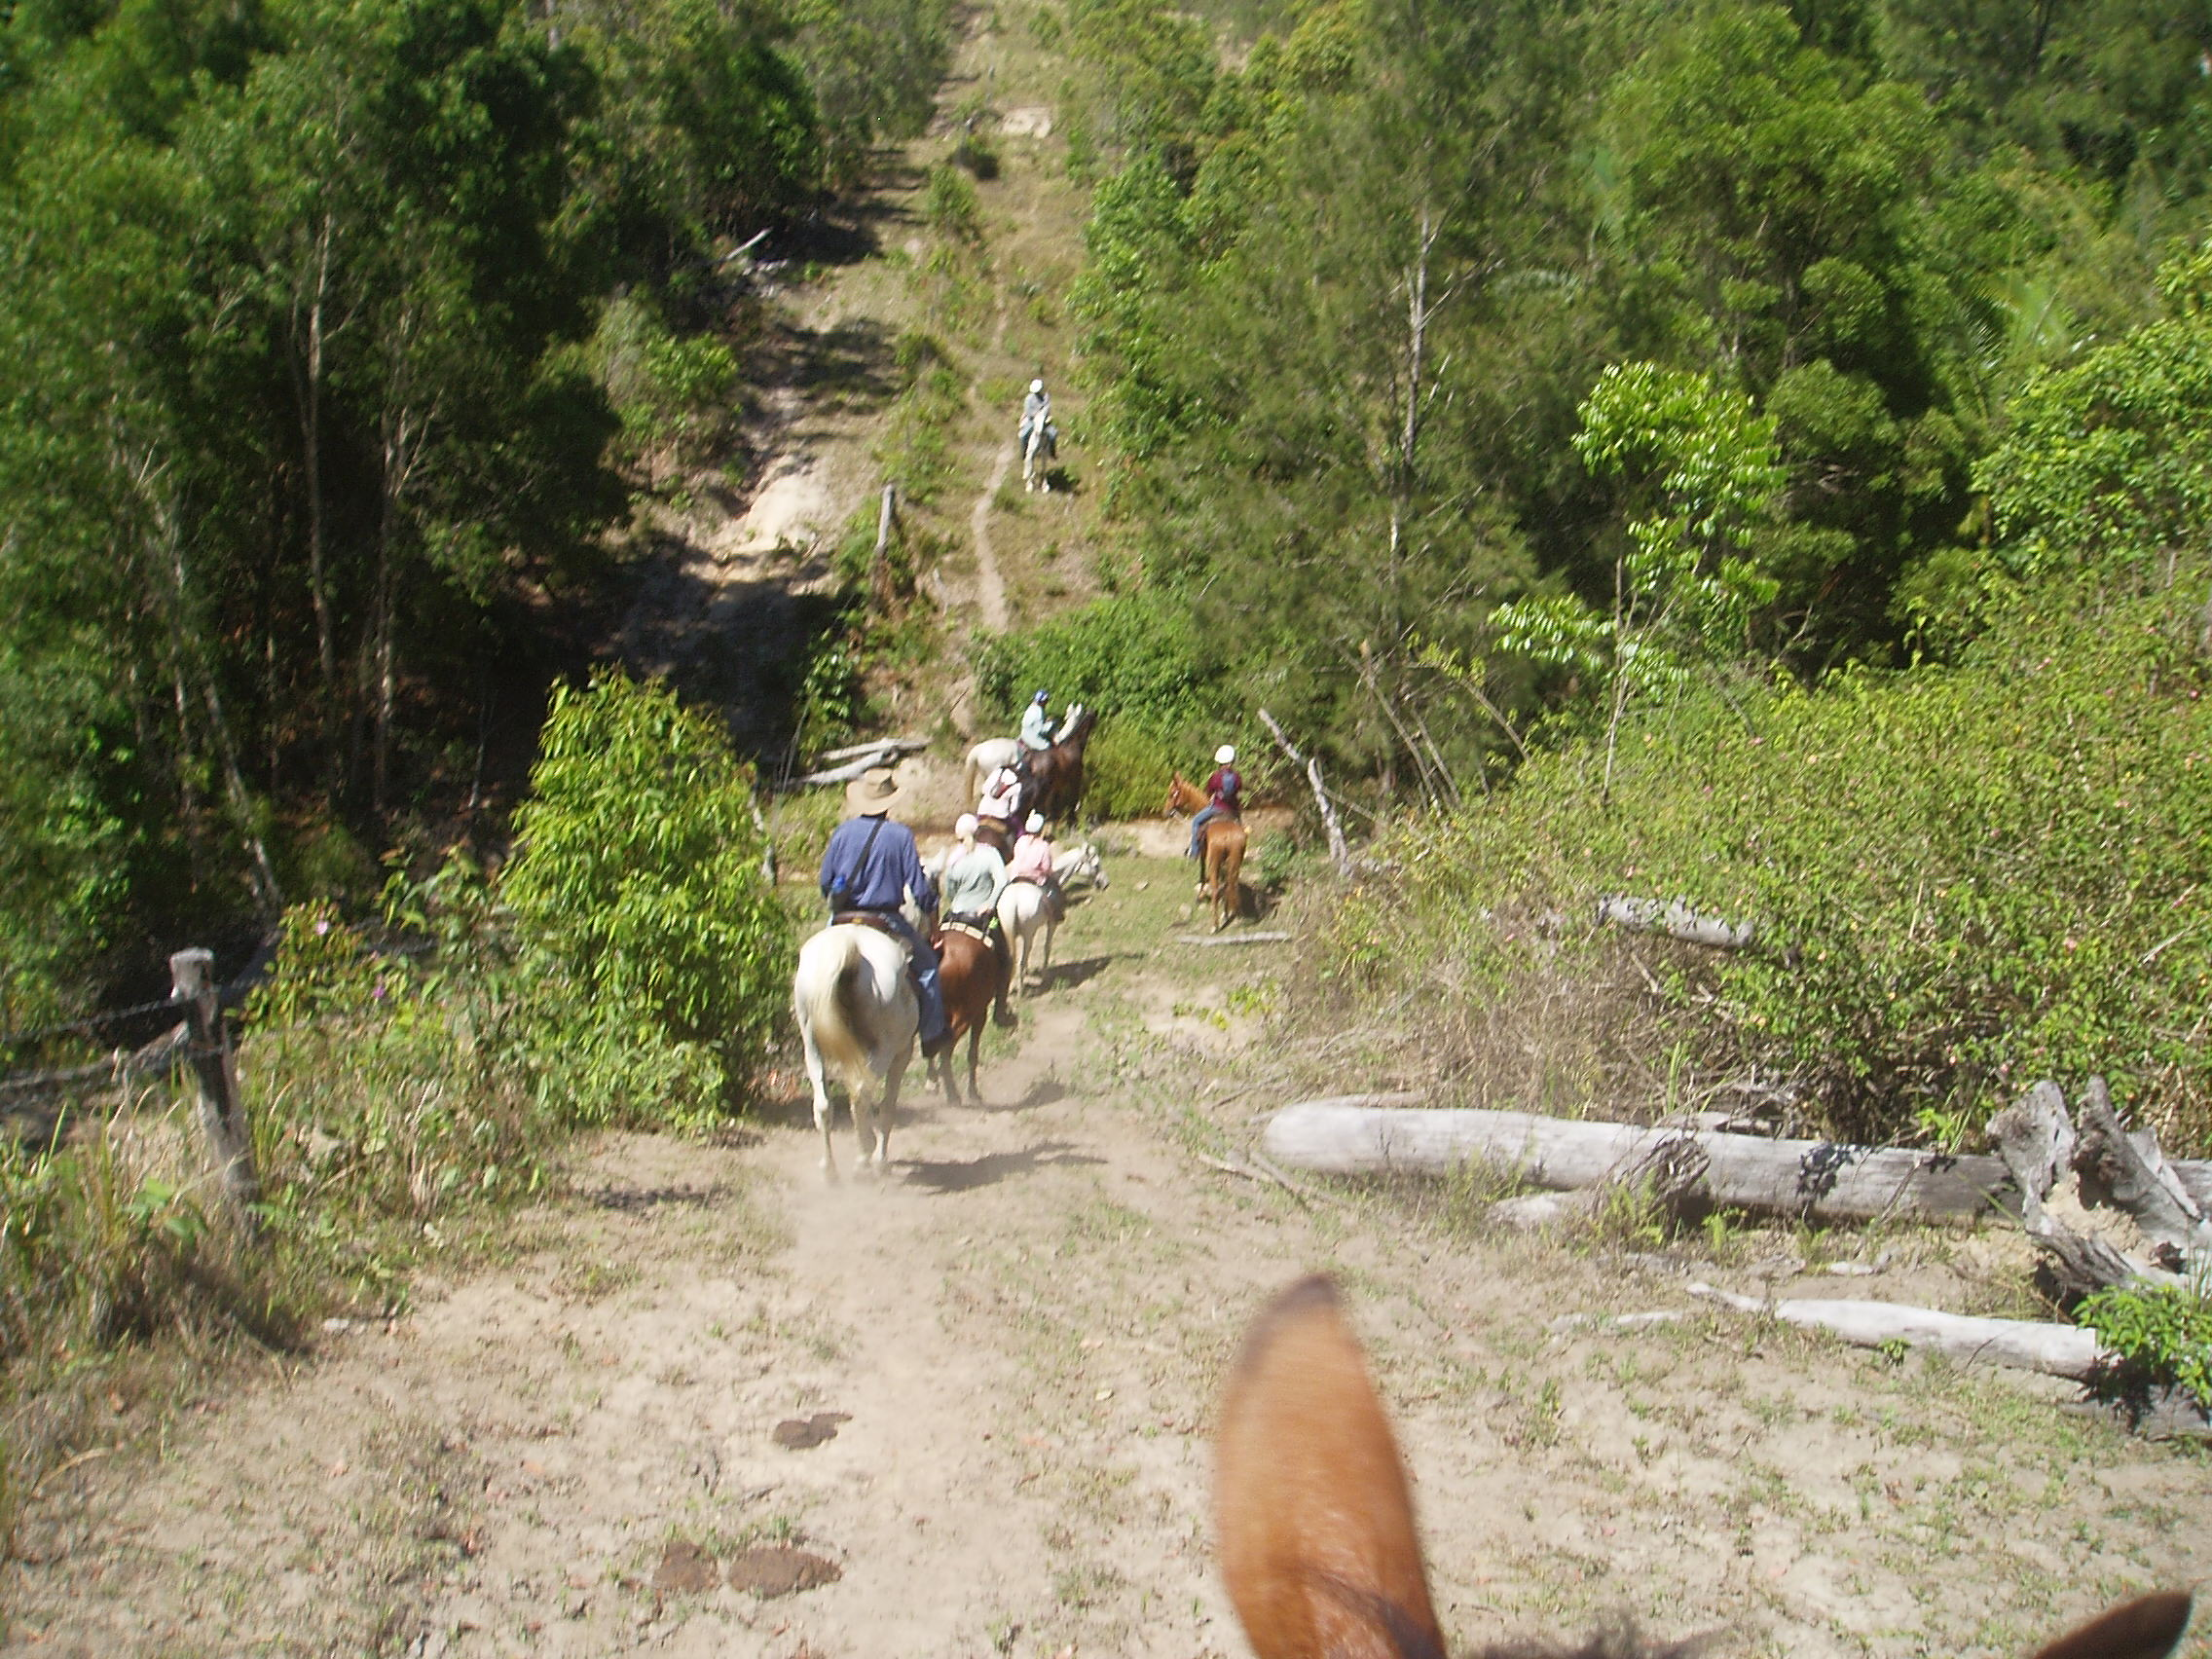 Trailriders negotiating a steep hill during the local Teemburra Dam trailride